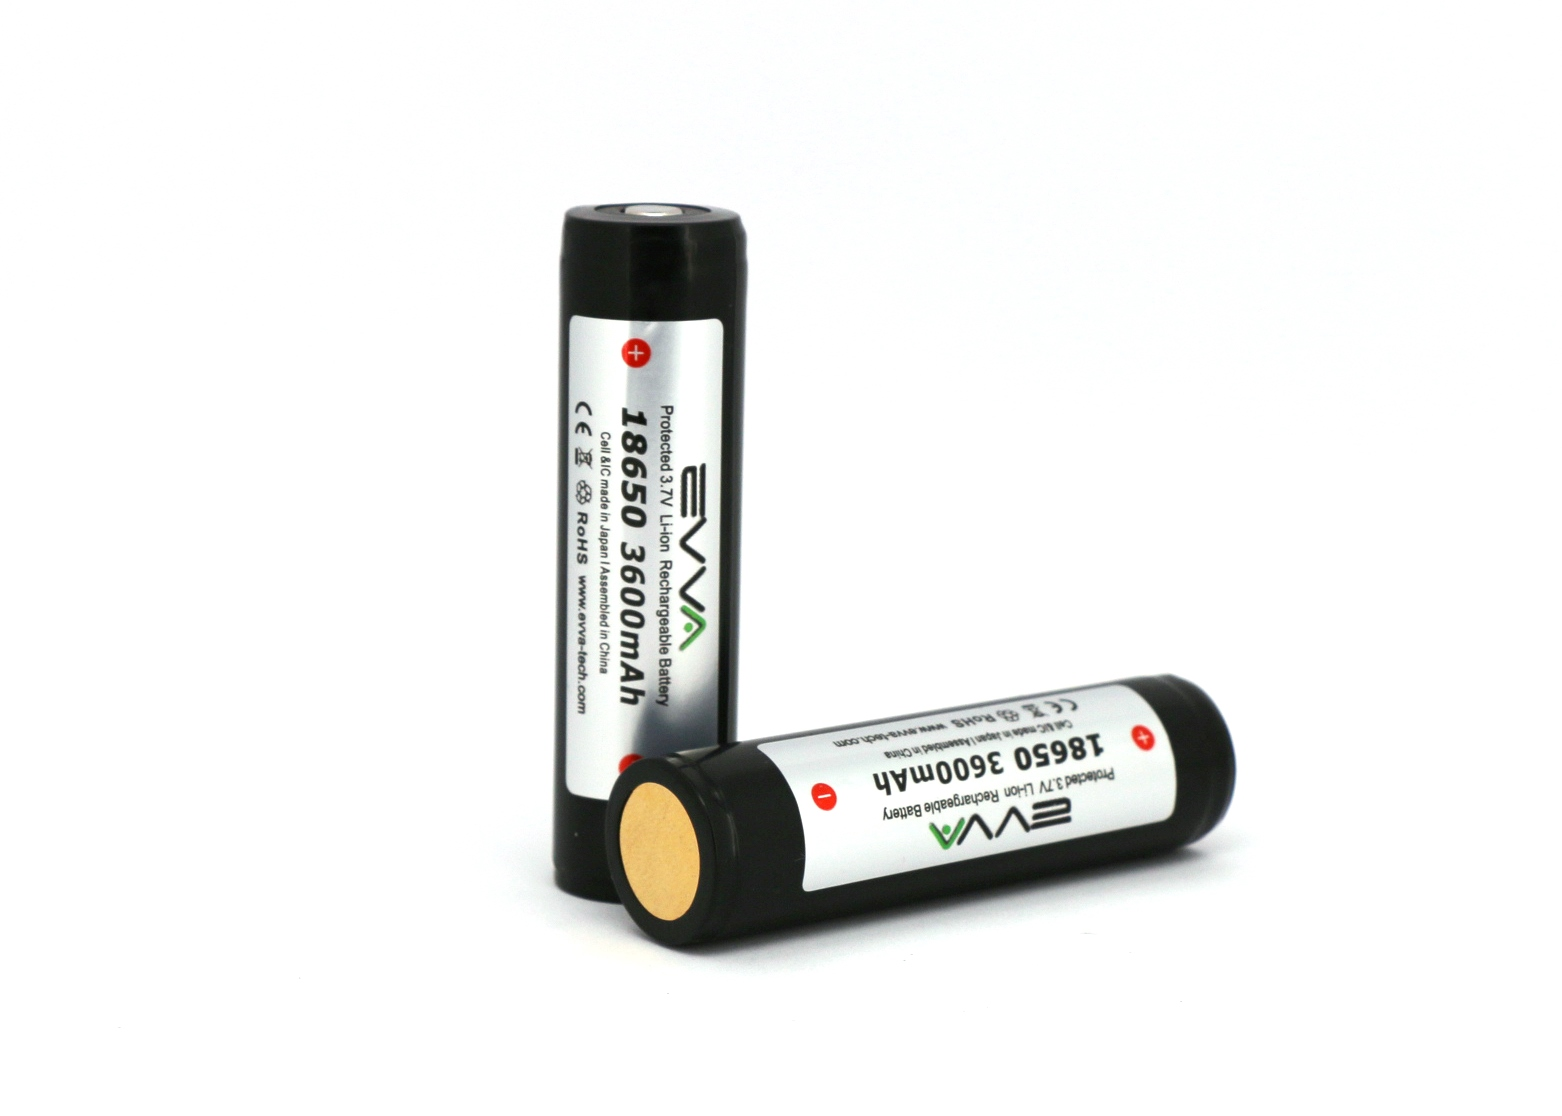 EVVA Protected 18650 3.7V 3600mAh Li-ion Rechargeable Battery